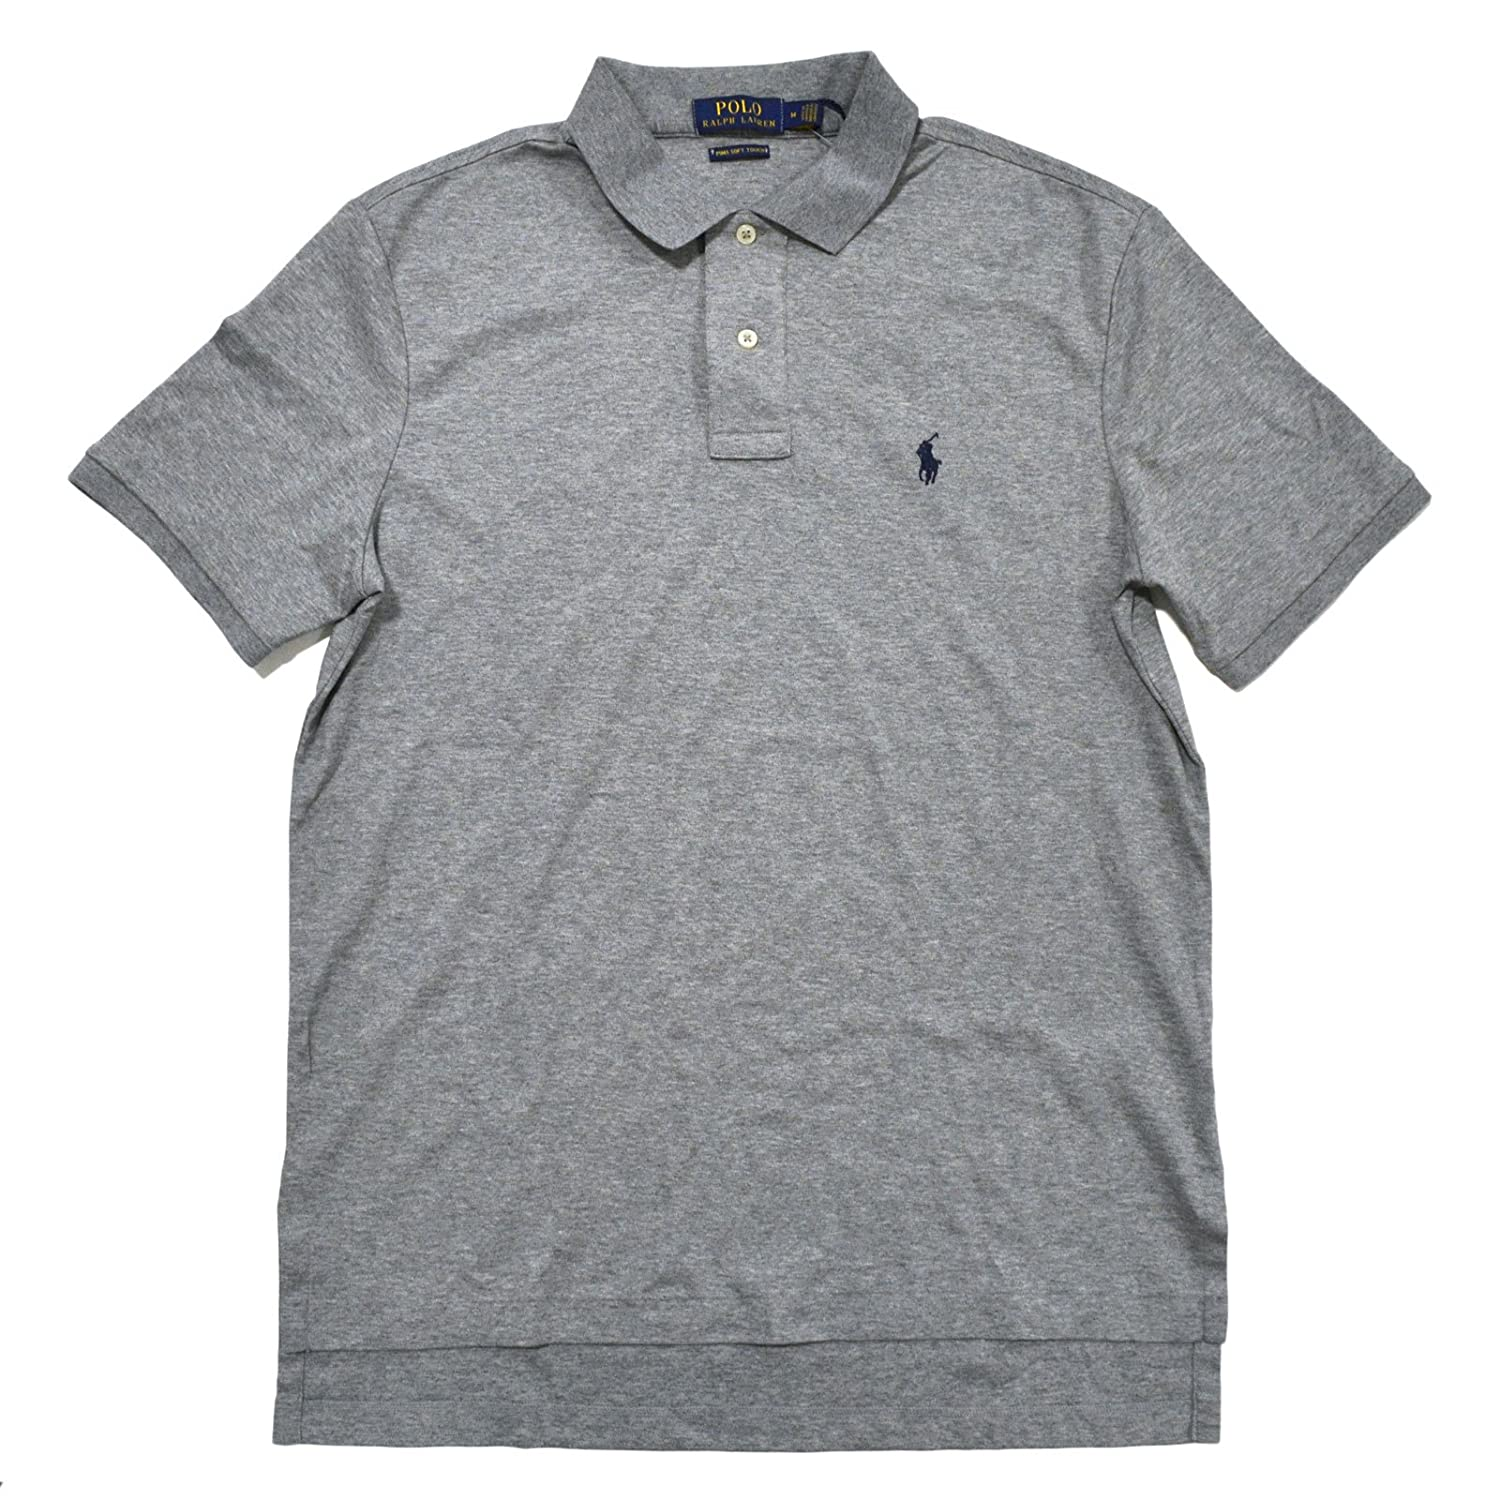 946bba3fe Polo Ralph Lauren Mens Pima Soft Touch Interlock Polo Shirt at Amazon Men s  Clothing store